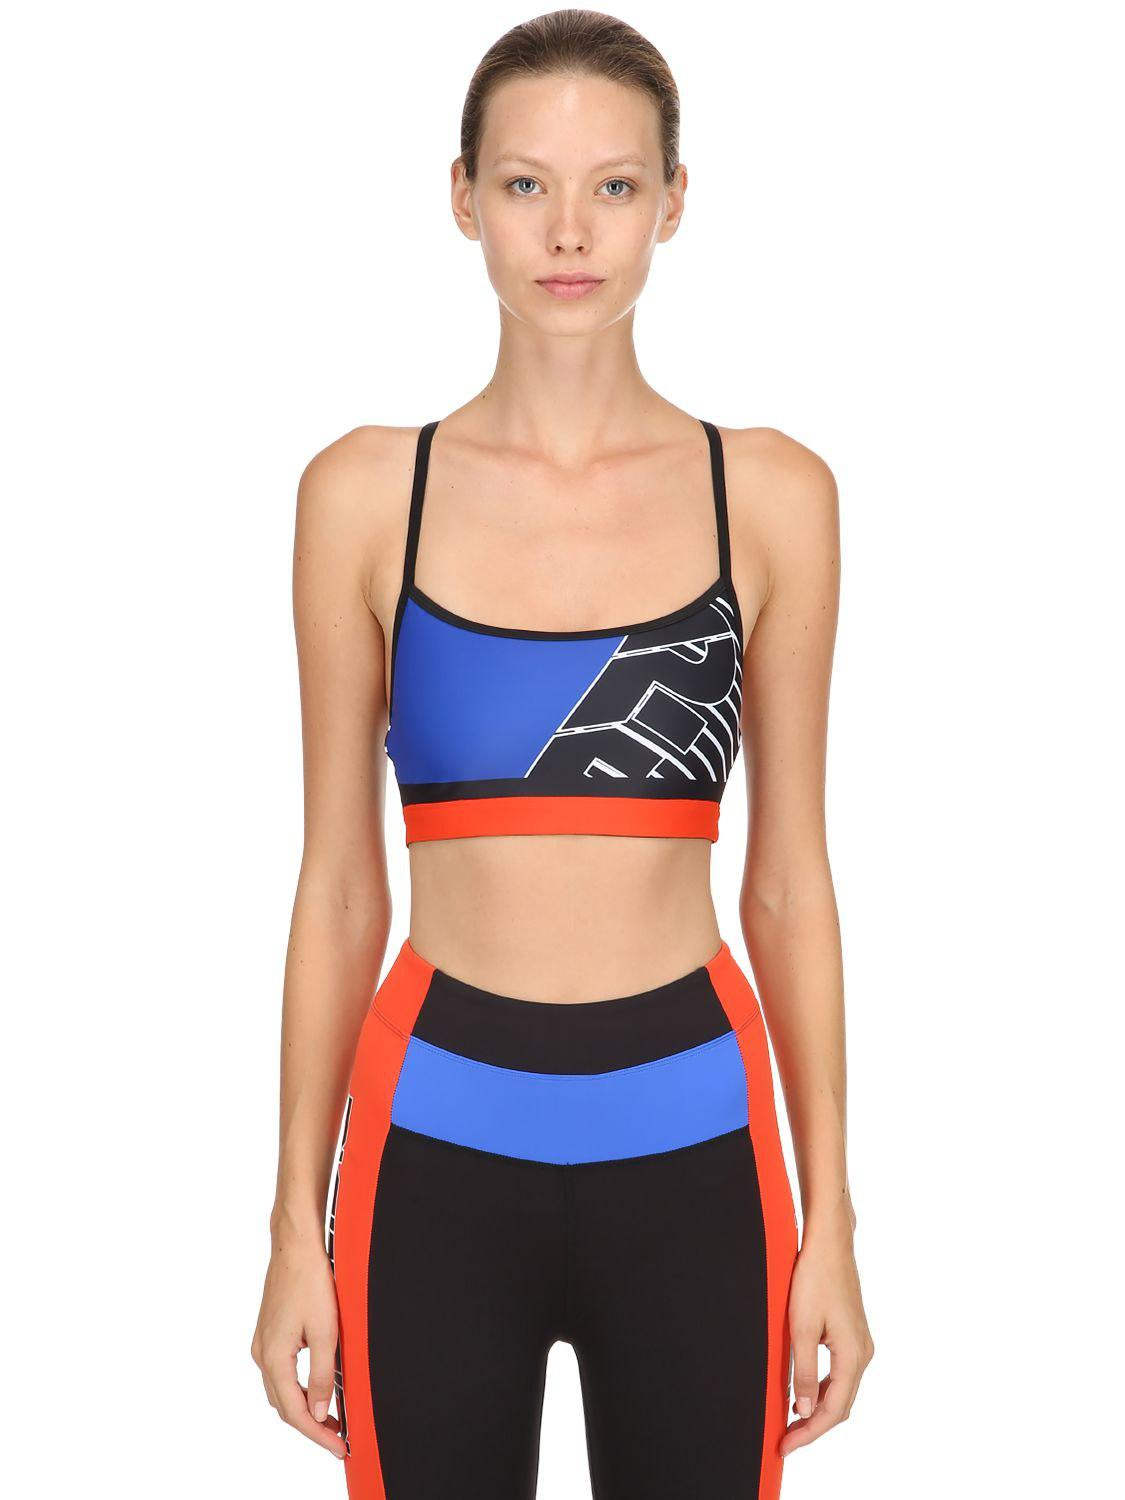 05115df5062c5 P.E Nation The Turnover Crop Sports Bra in Blue - Lyst